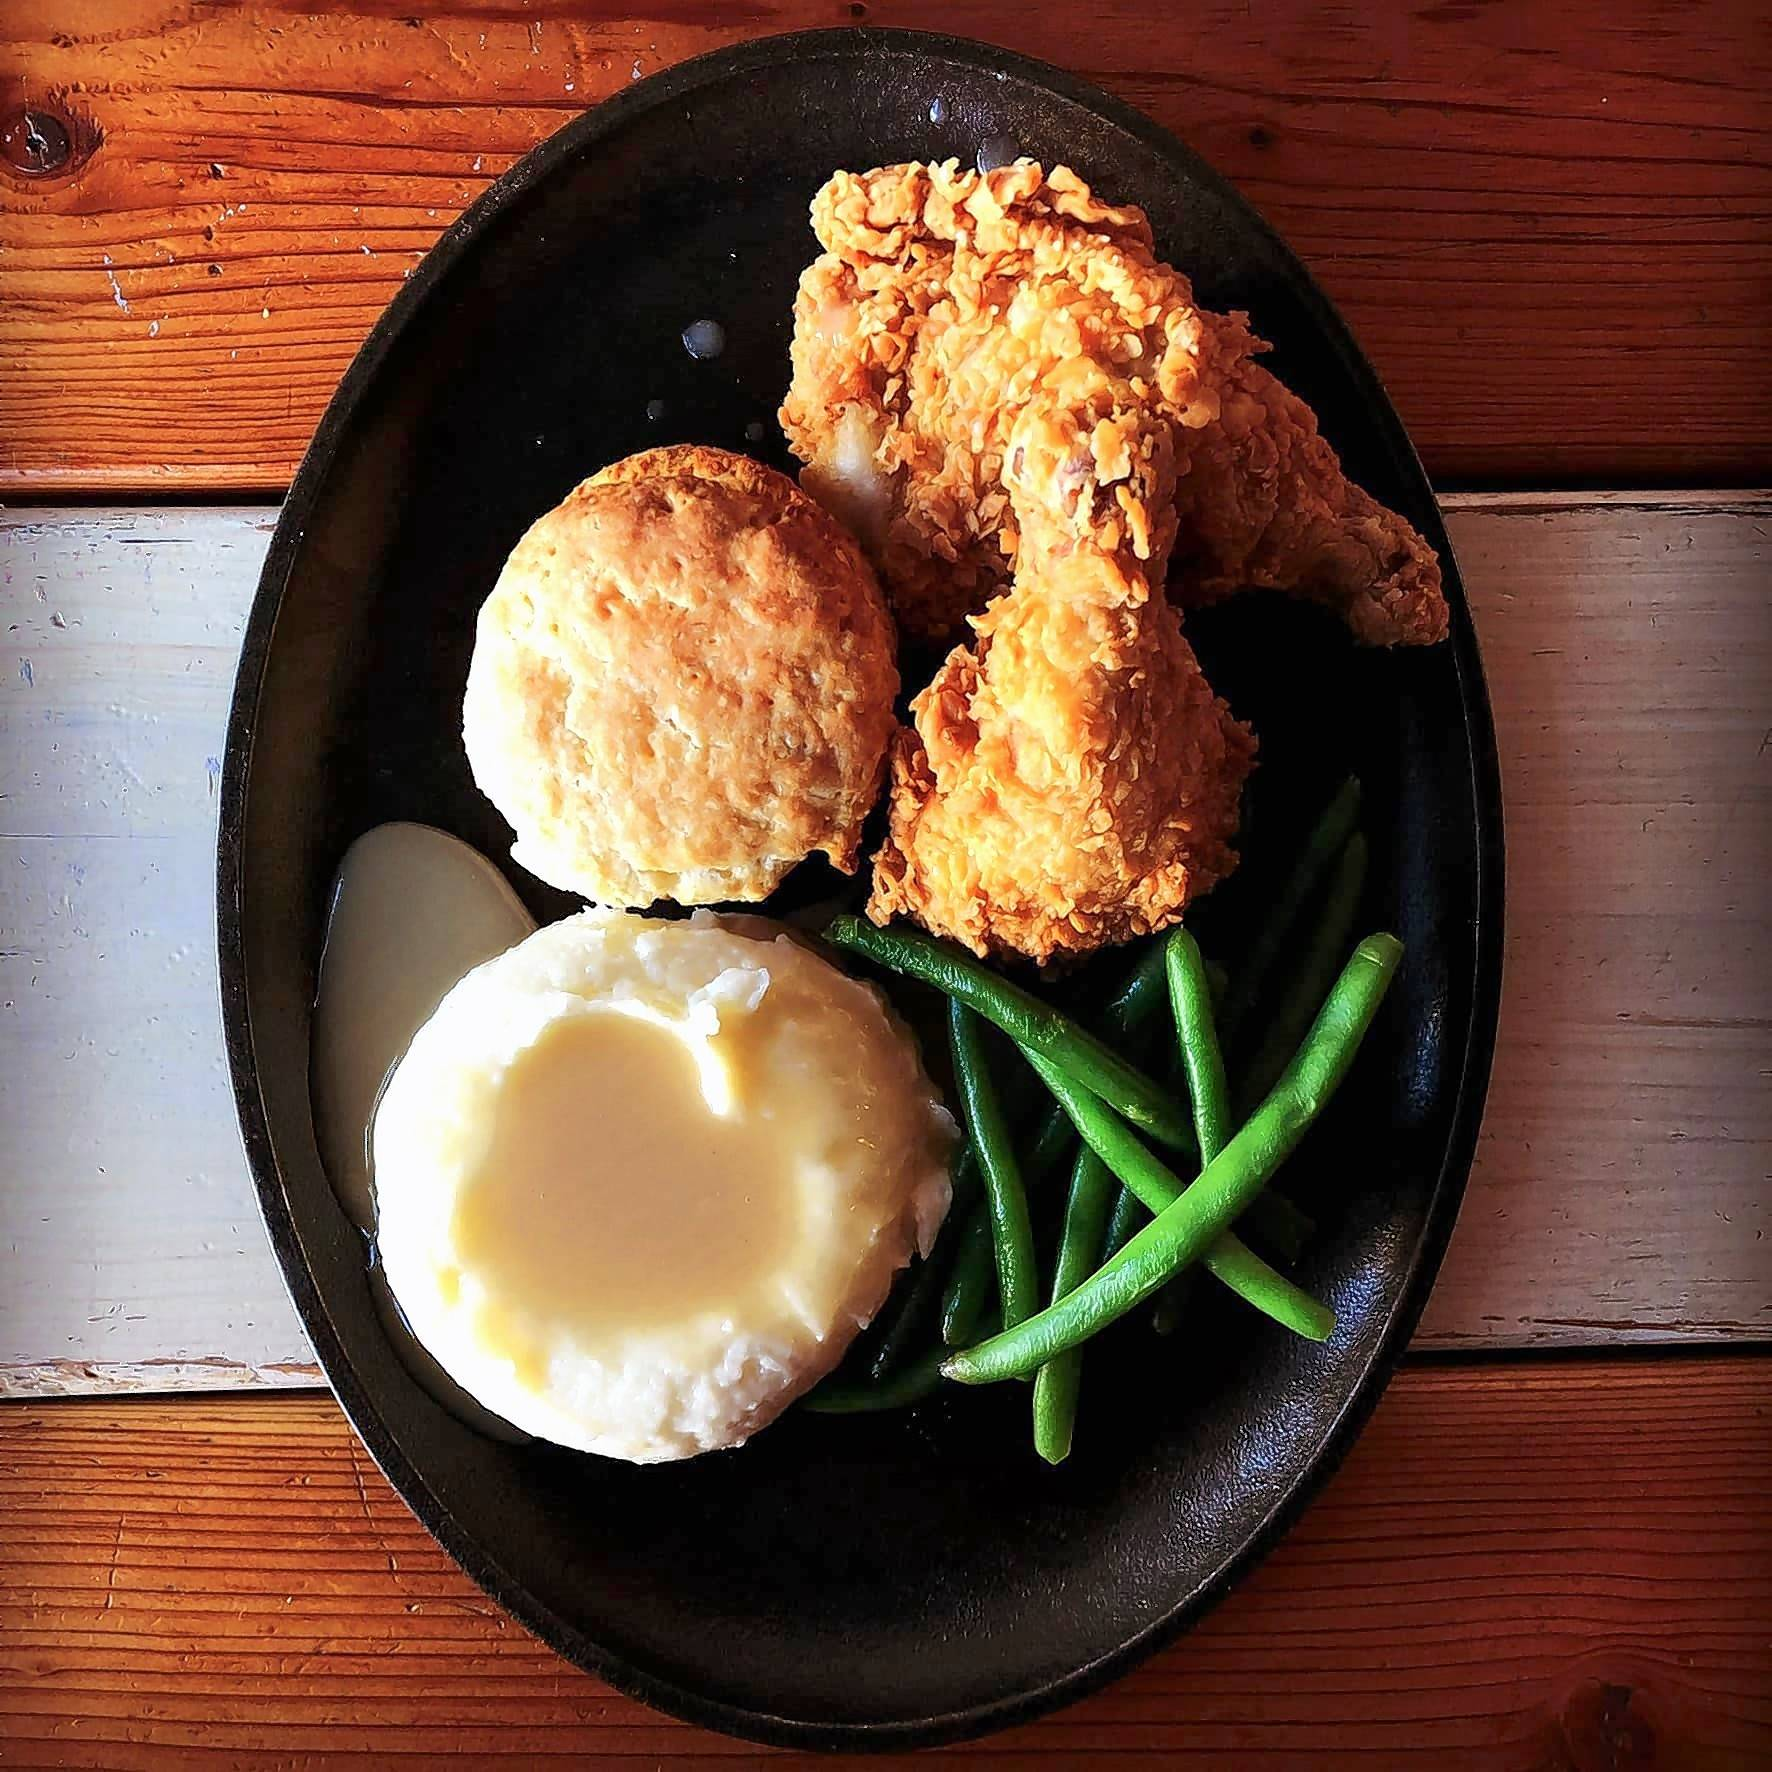 Thursday is fried chicken night at Oscar Lee's Barbecue in Libertyville.